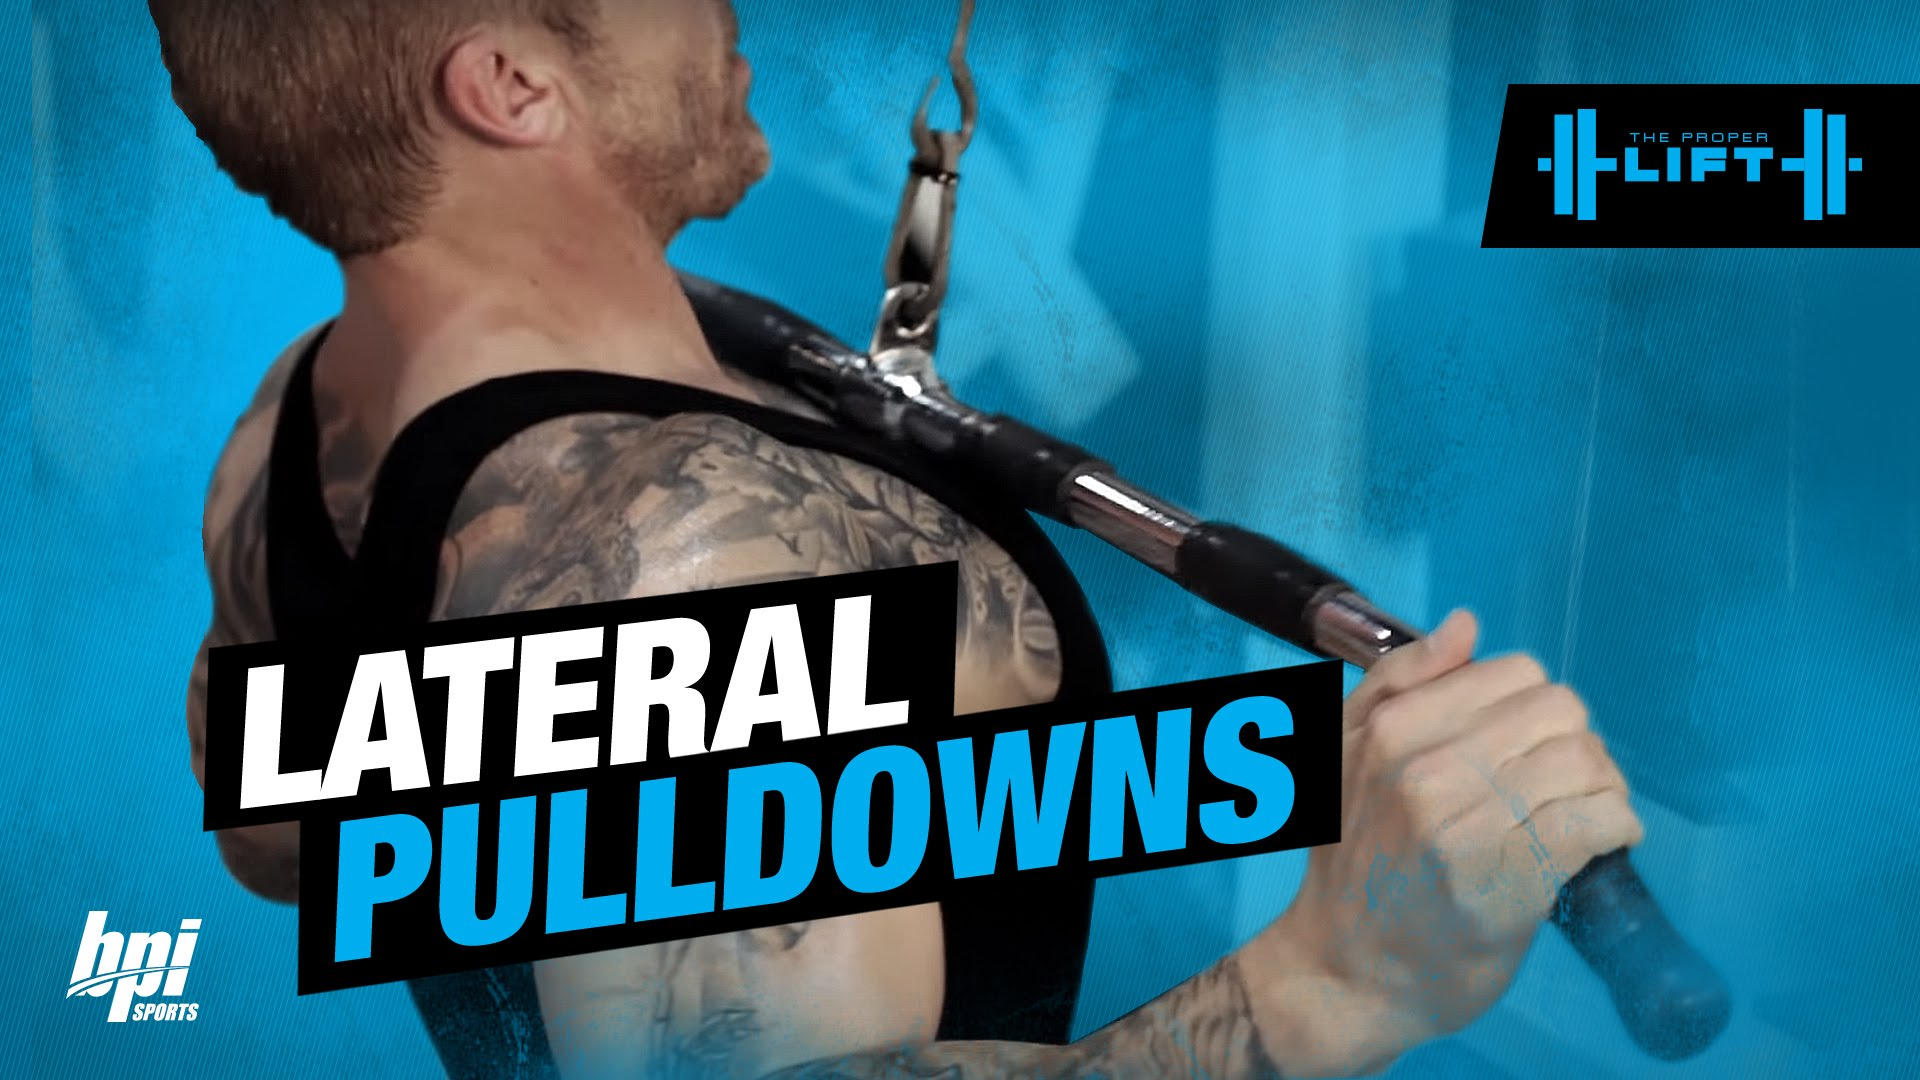 Lat-Pulldown-Exercise-The-Proper-Lift-BPI-Sports